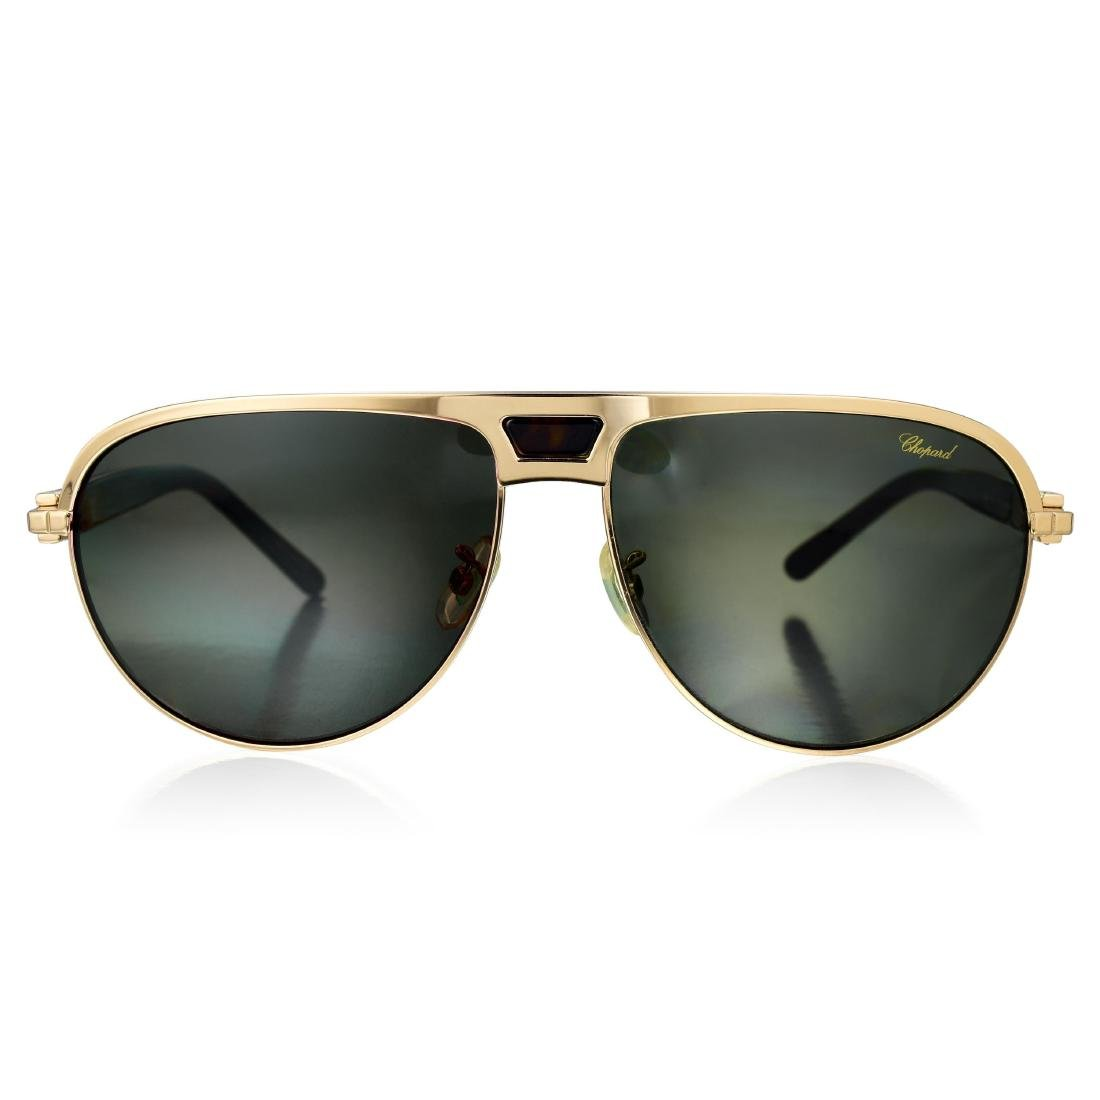 Chopard Sunglasses